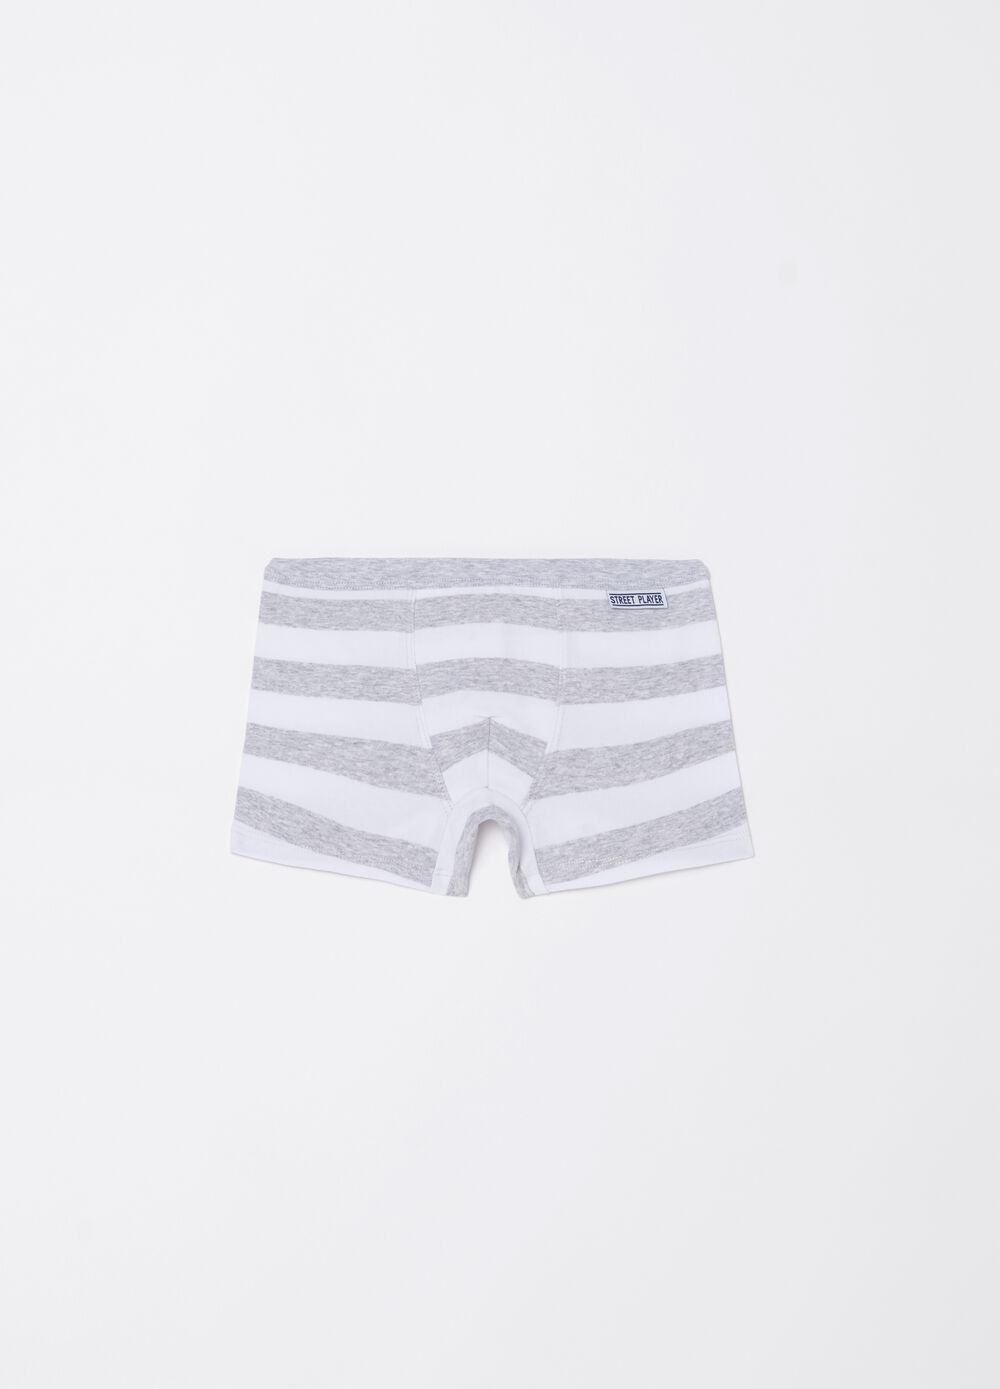 Boxer in biocotton stretch fantasia righe